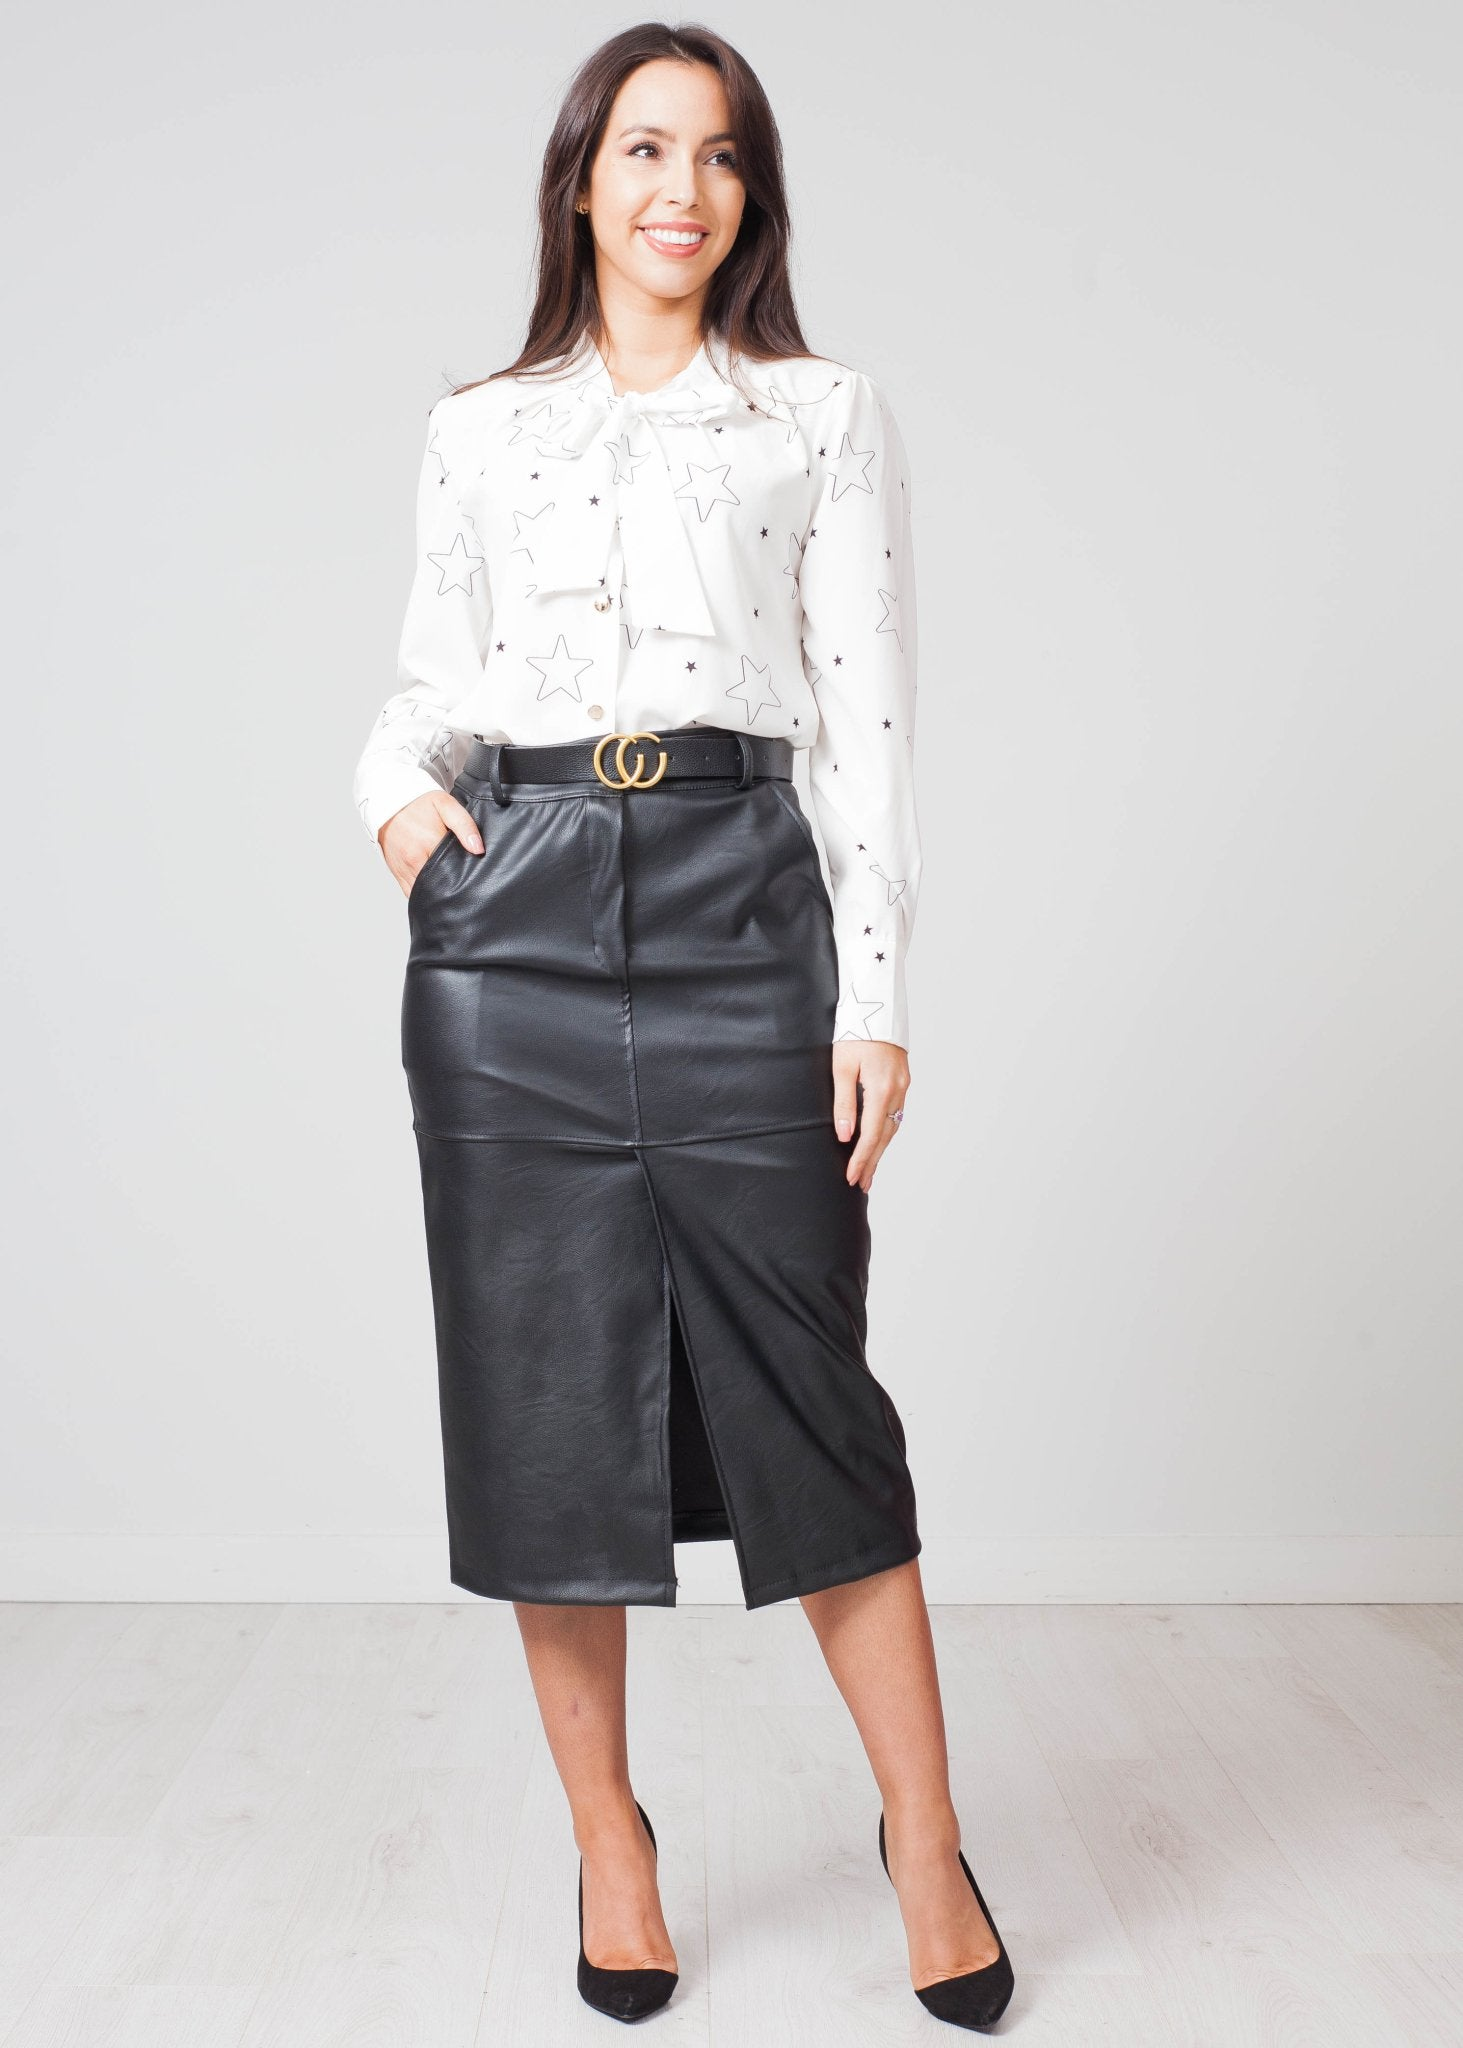 Priya Faux Leather Pencil Skirt In Black - The Walk in Wardrobe